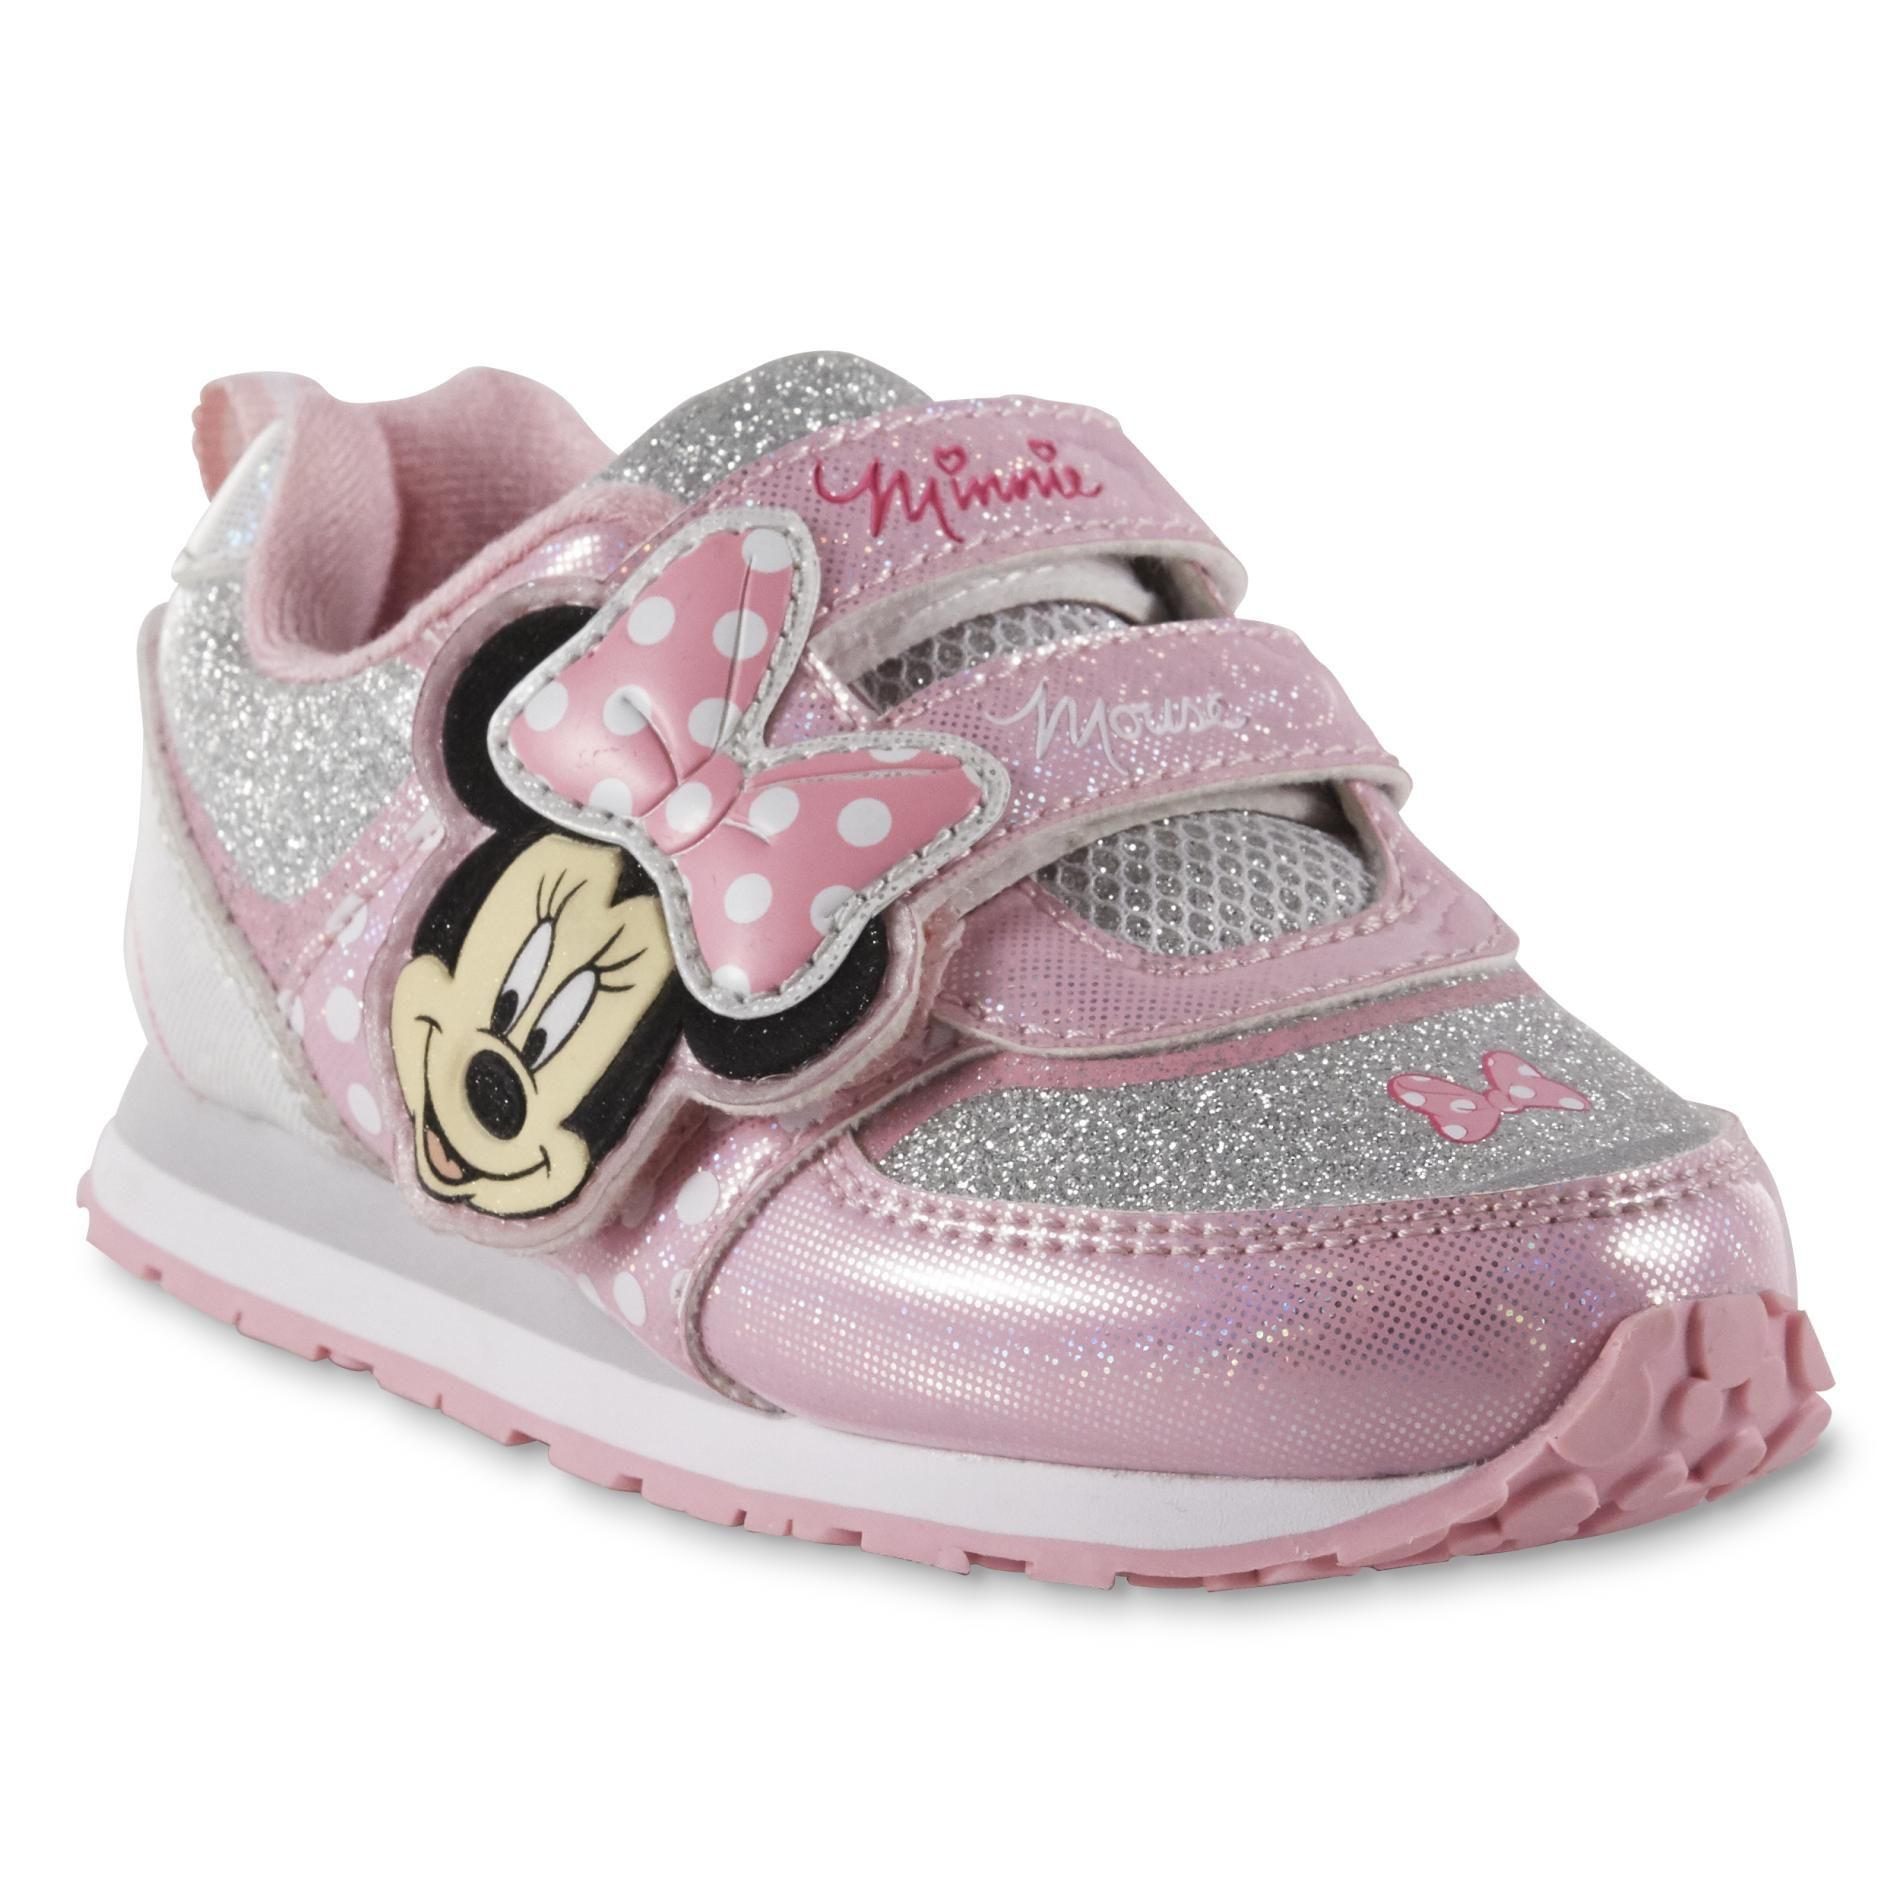 f6ac7fee44de Sears - Online Minnie Mouse Pink, Baby Shoes, Toddler Girl, Athletic Shoes,